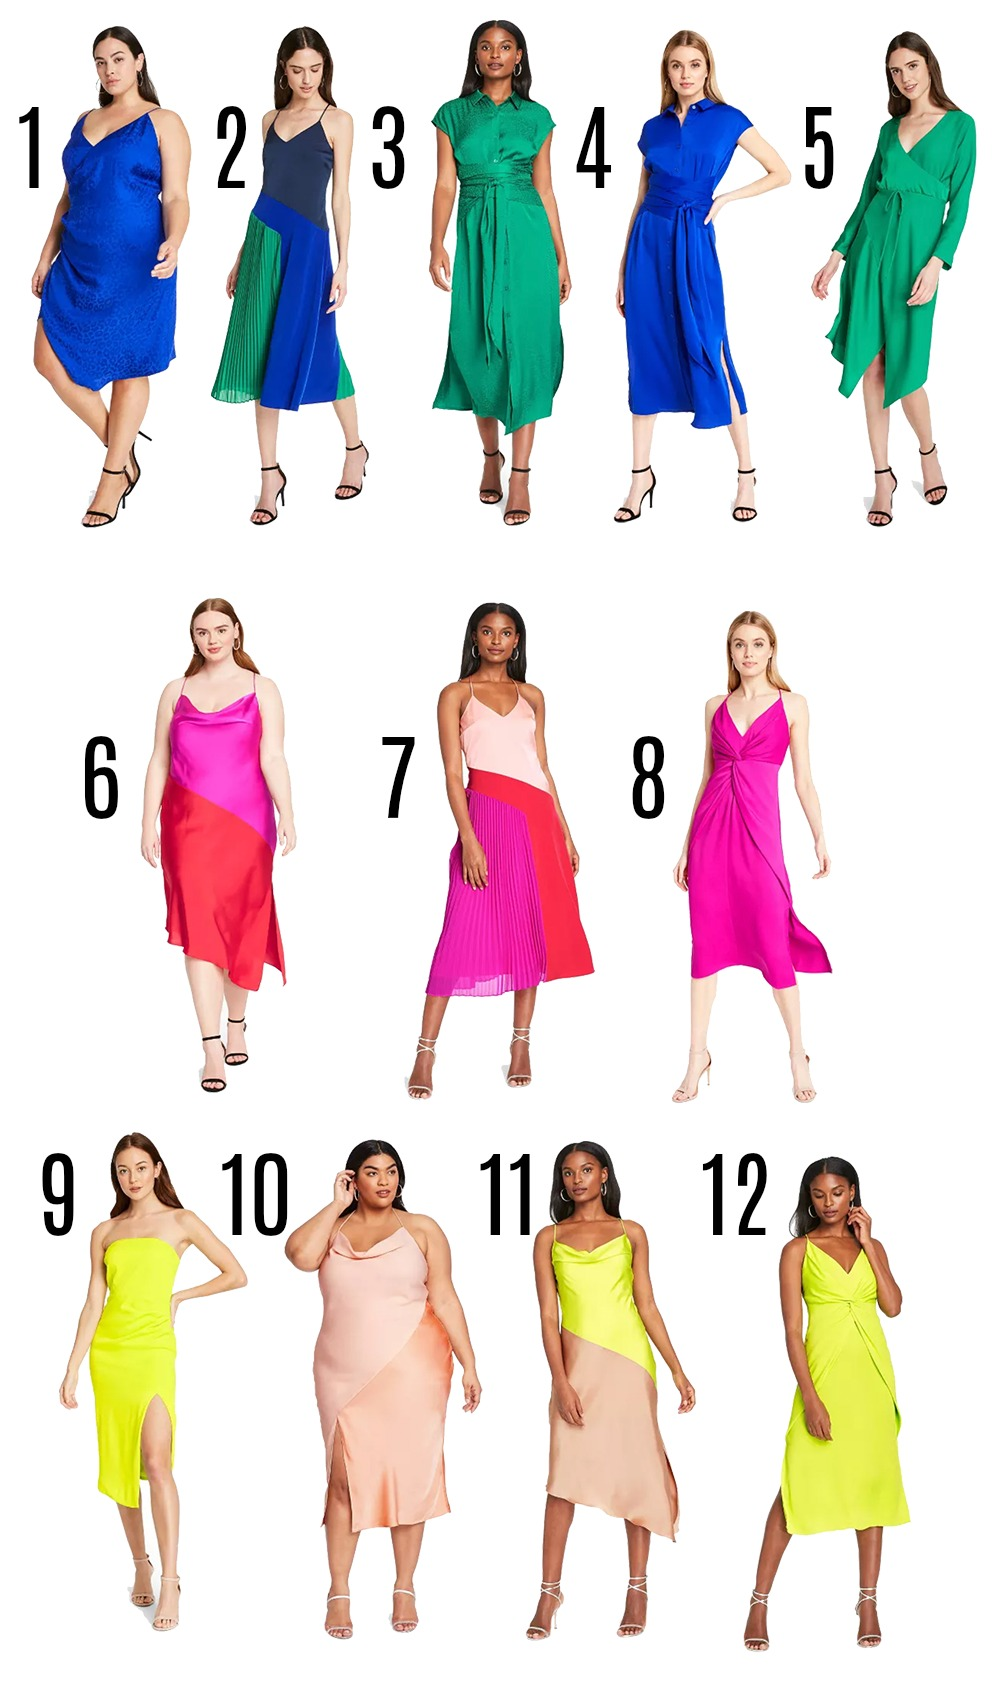 Target Designer Dress Collection for Summer 2020 I Cushnie Styles on Dreaminlace.com